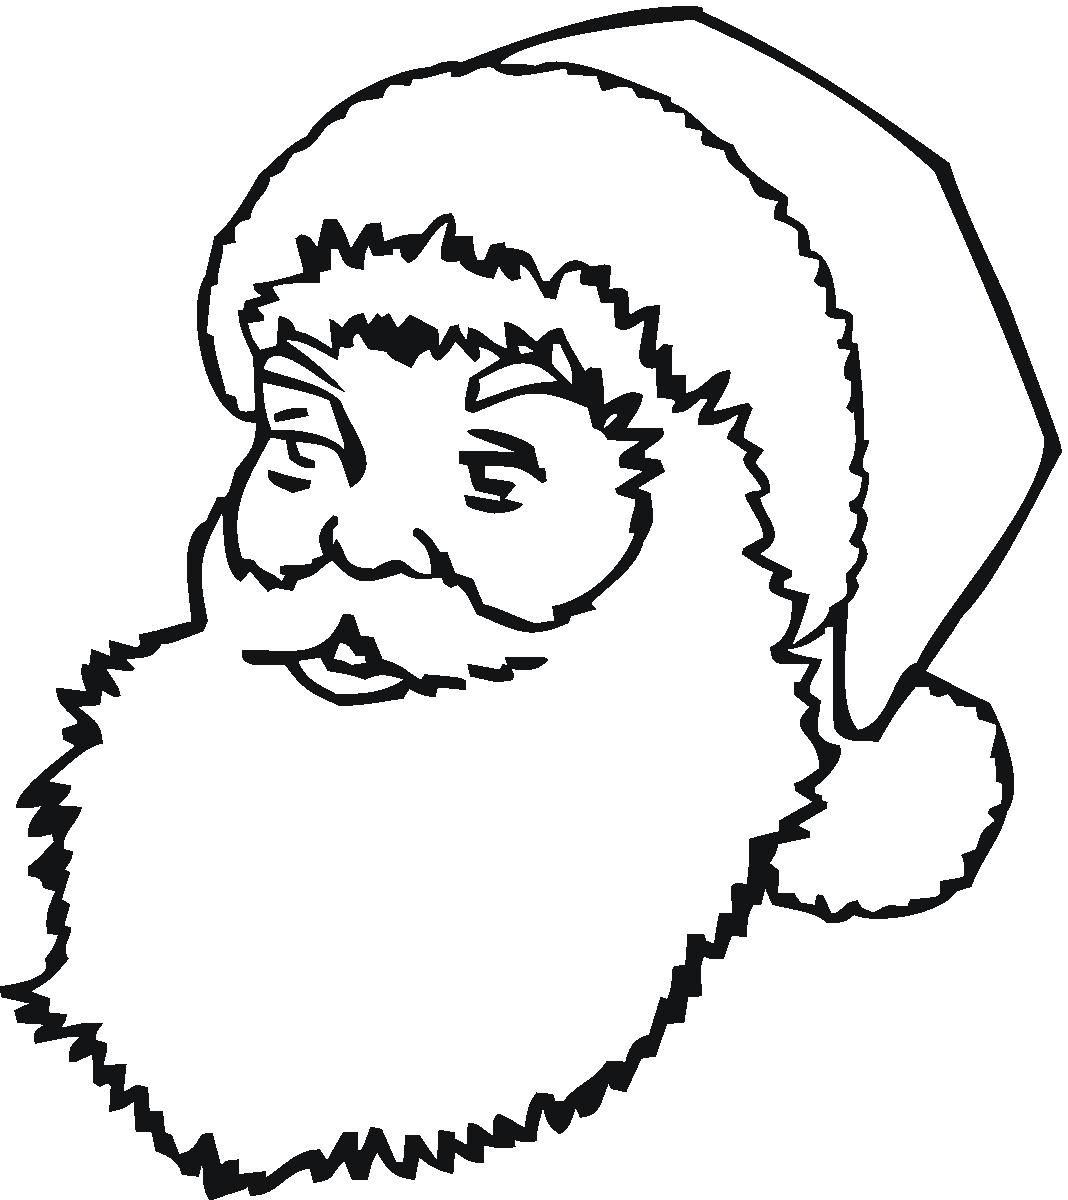 Santa Claus Sleigh Coloring Pages | Free Printable Santa Claus Coloring PagesFor Kids